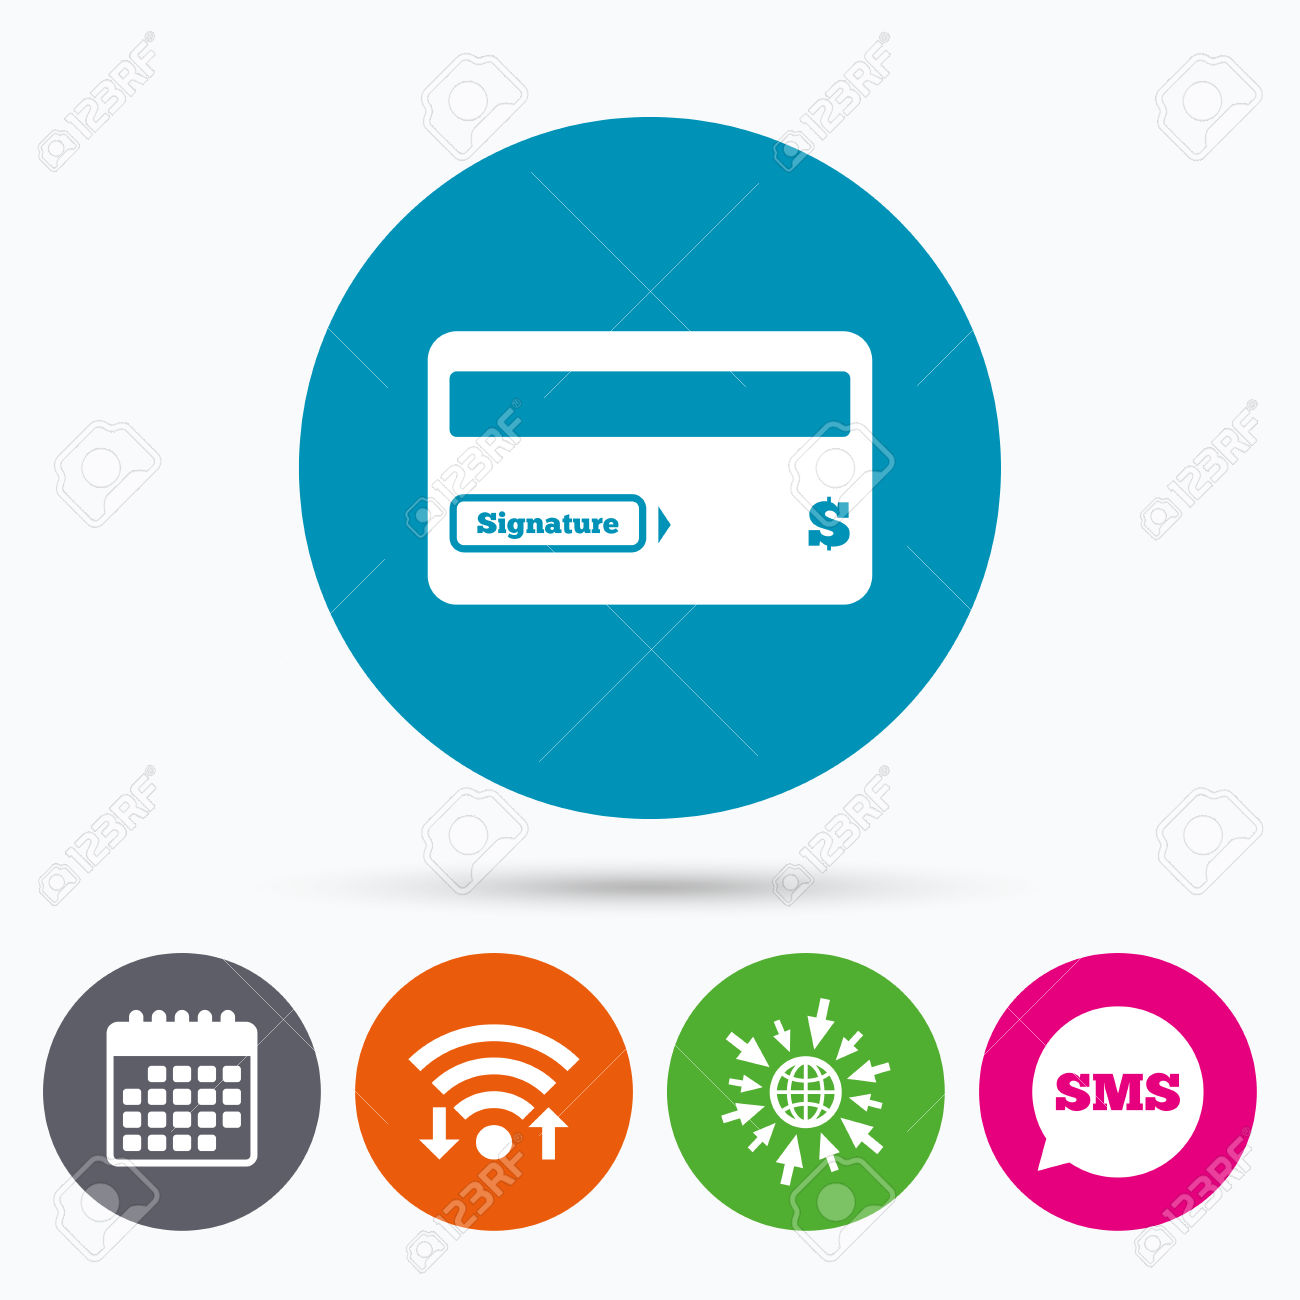 Wifi, Sms And Calendar Icons. Credit Card Sign Icon. Debit Card.